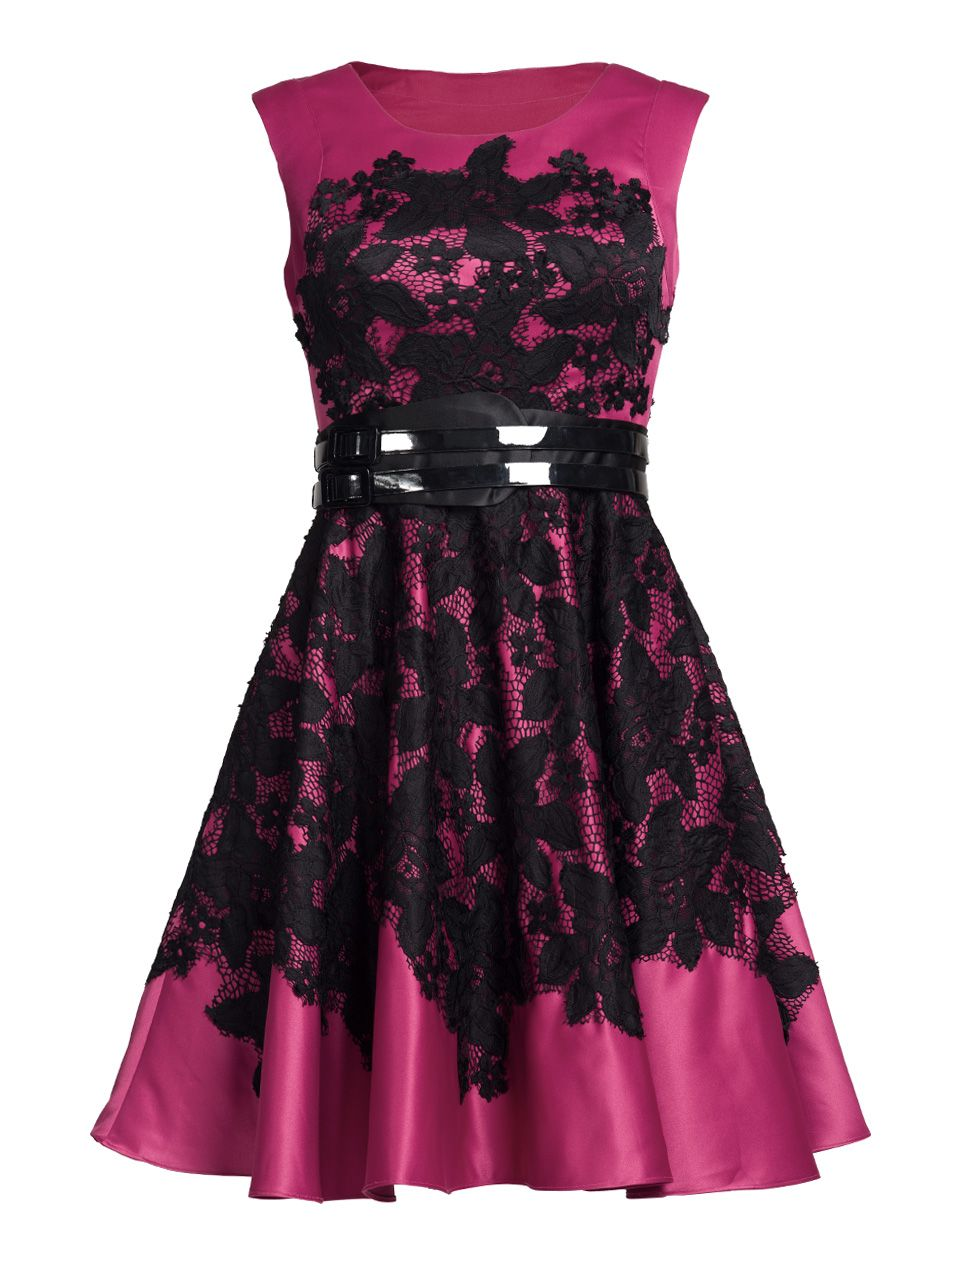 Tamikia fuschia fit & flare dress